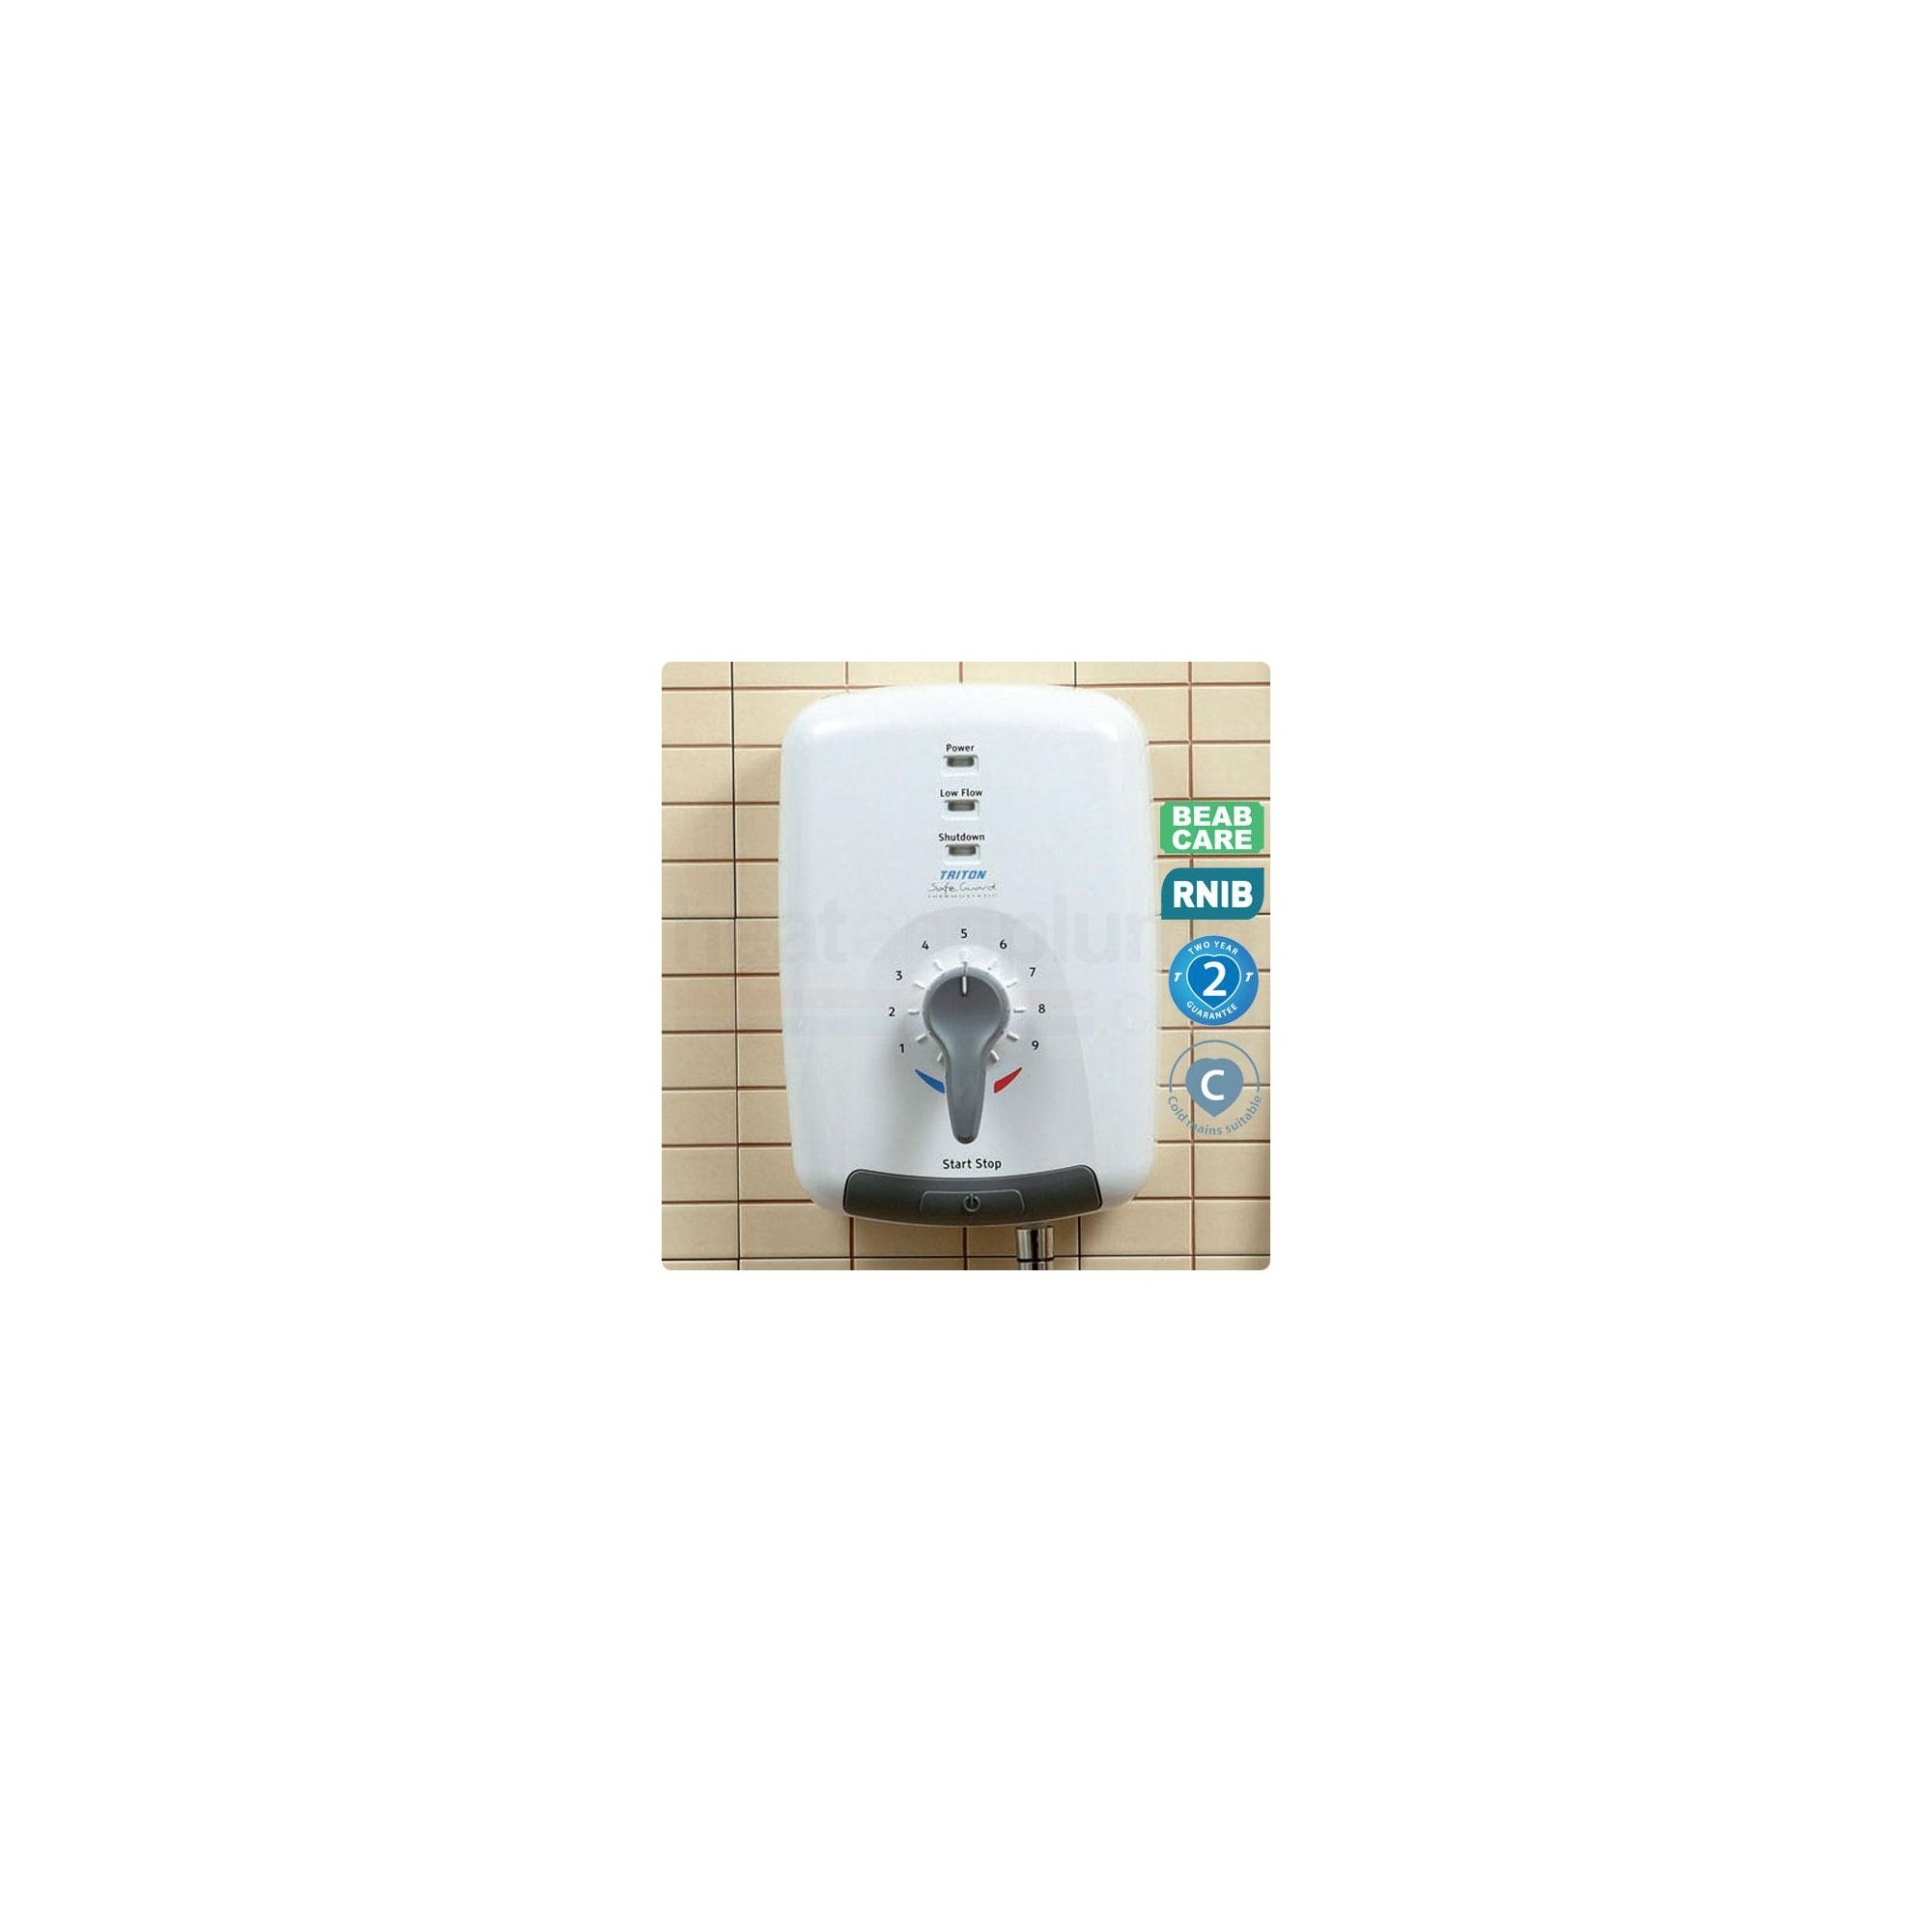 Triton Safeguard T100 Care 8.5kW Electric Shower at Tesco Direct